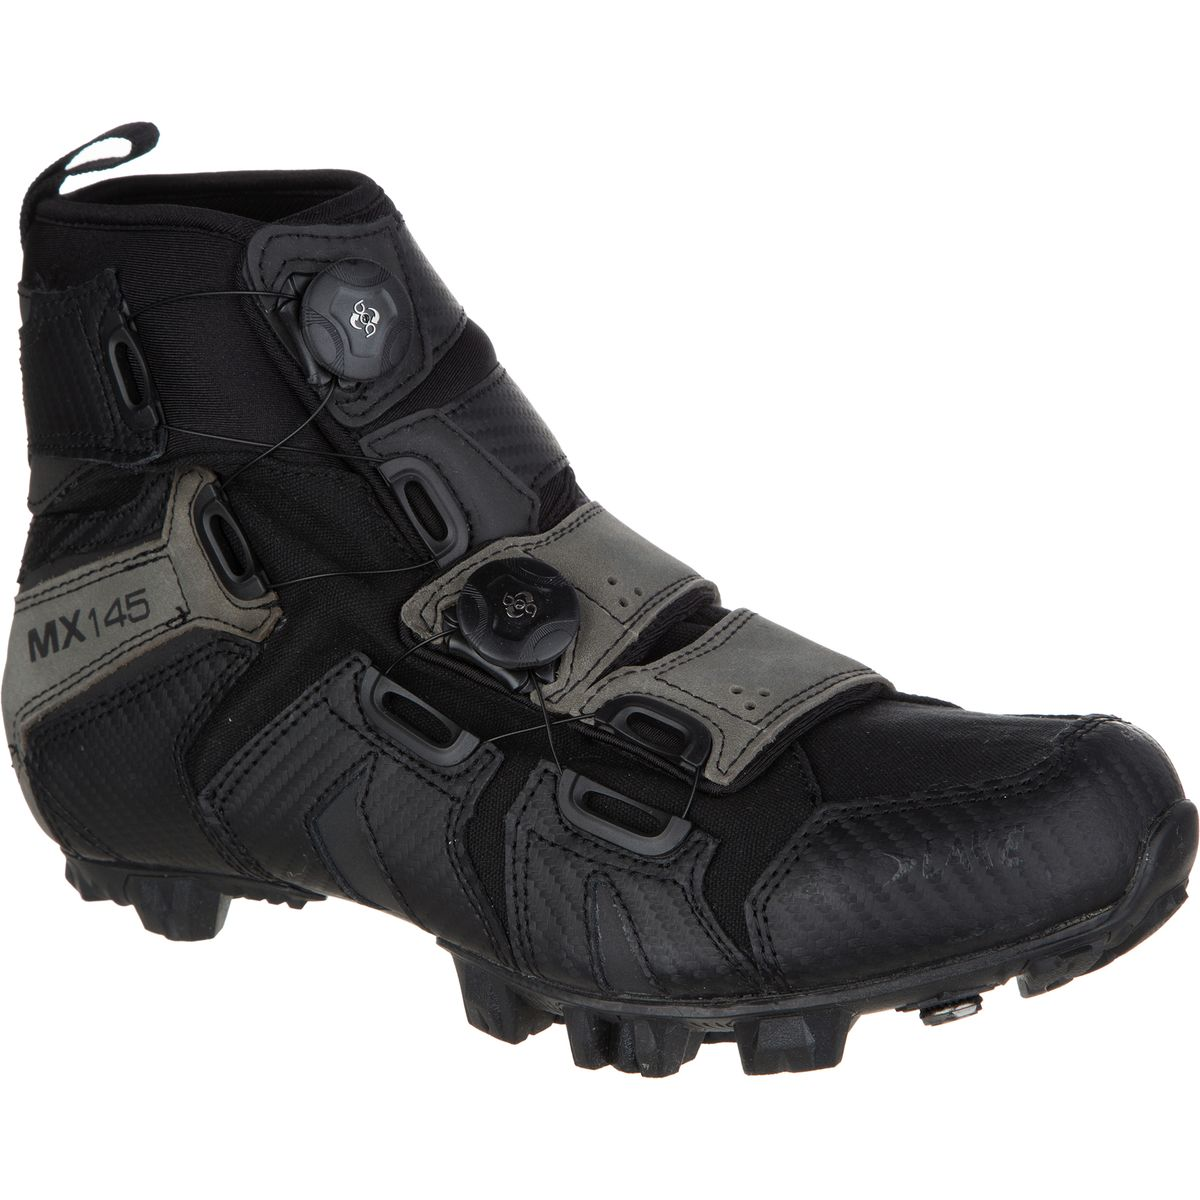 Lake MX145 Shoes Wide Men's